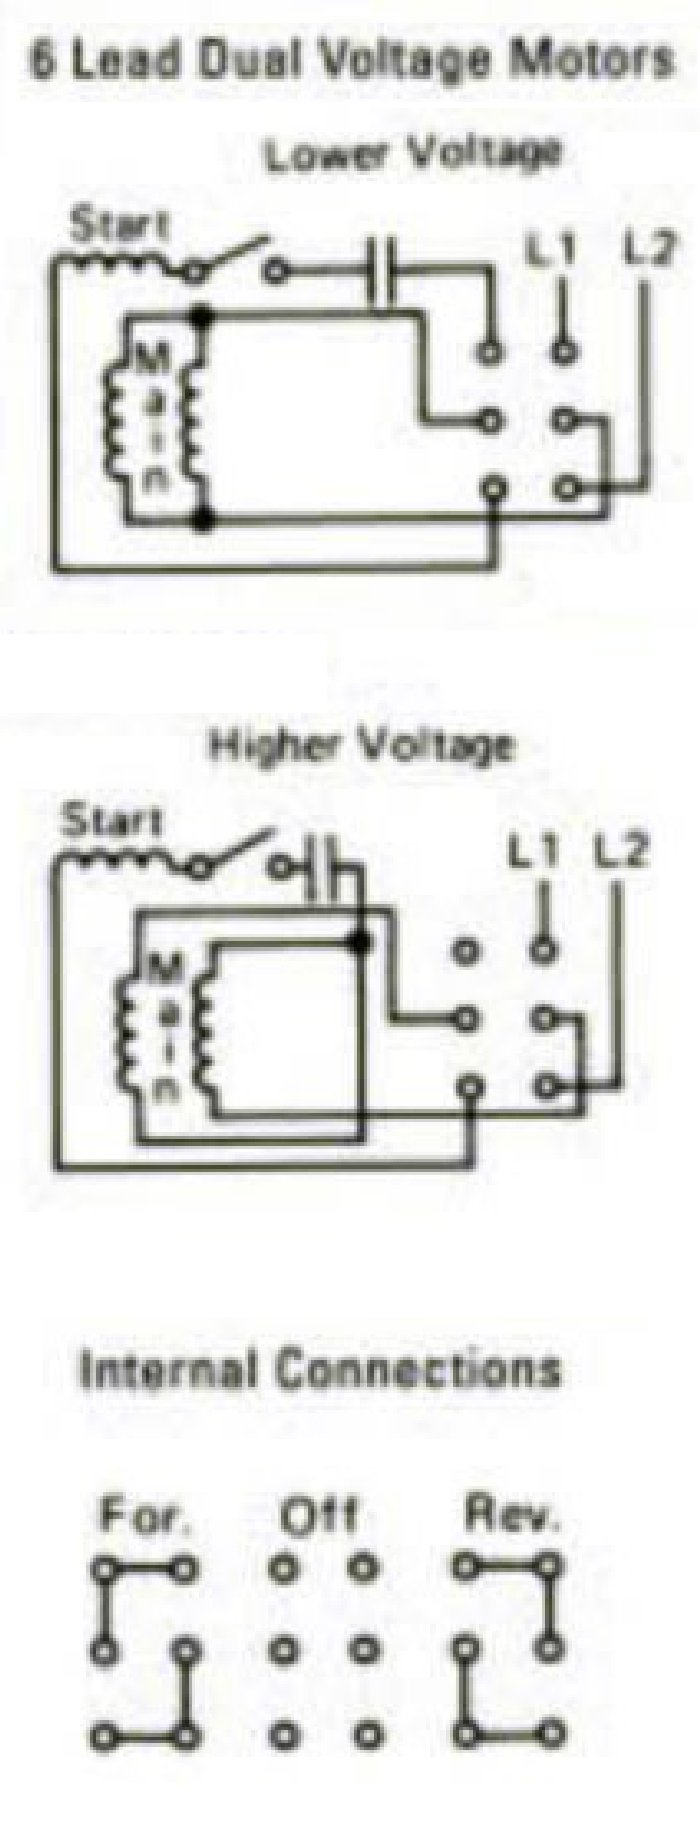 boat lift switch wiring diagram Download-Bremas Boat Lift Switch Wiring Diagram Boat Lift Switch Wiring Diagram Britishpanto 19 7 18-a